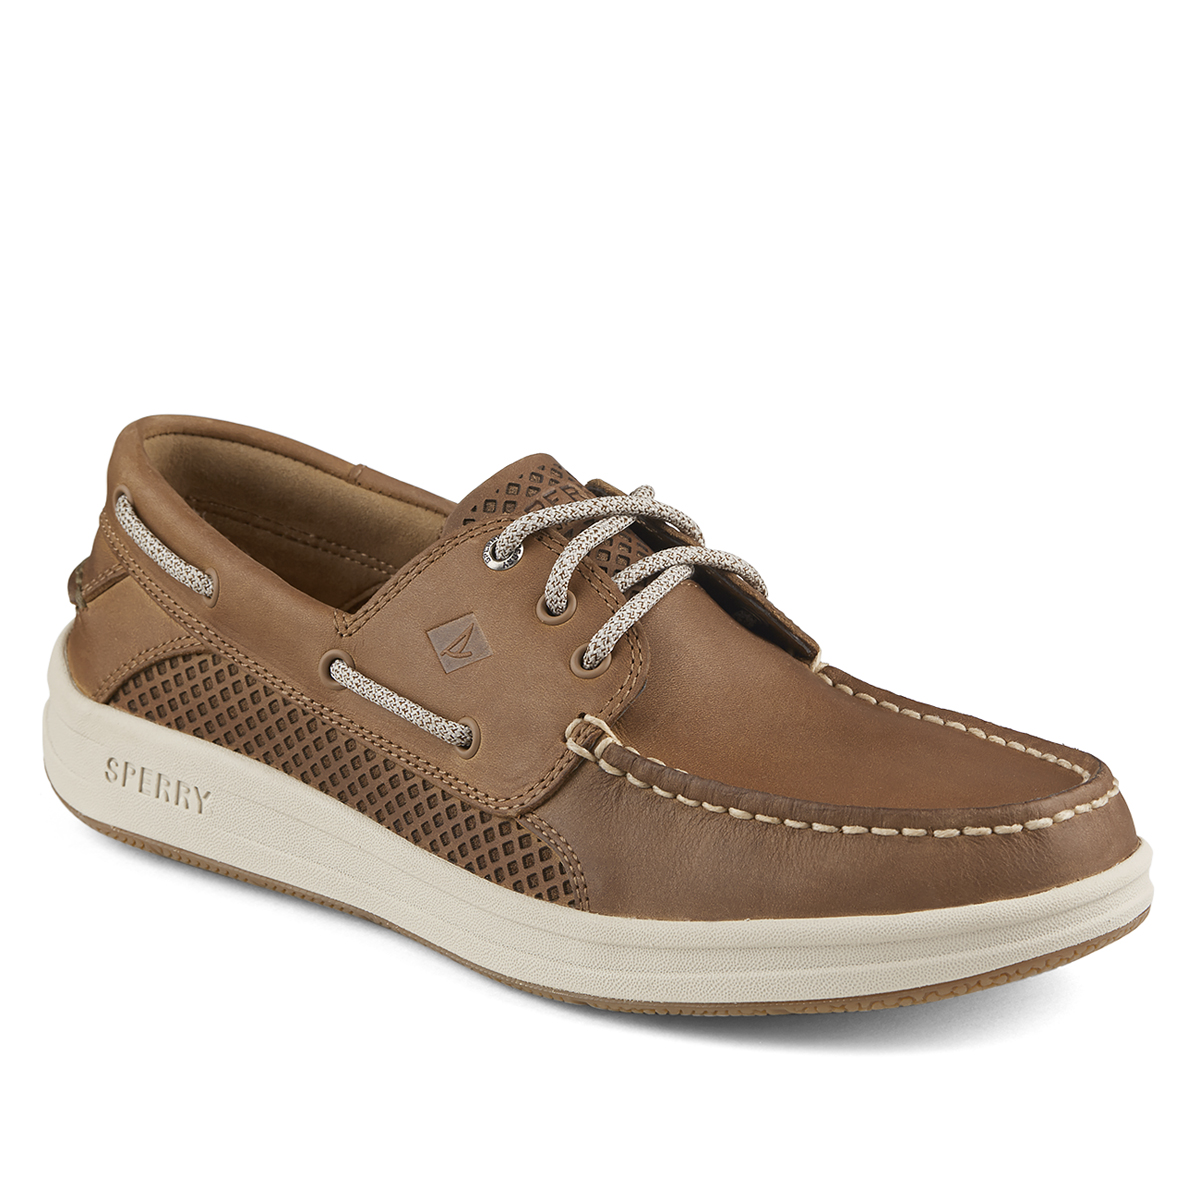 SPERRY MEN'S GAMEFISH 3-EYE BOAT SHOE (STS14239)